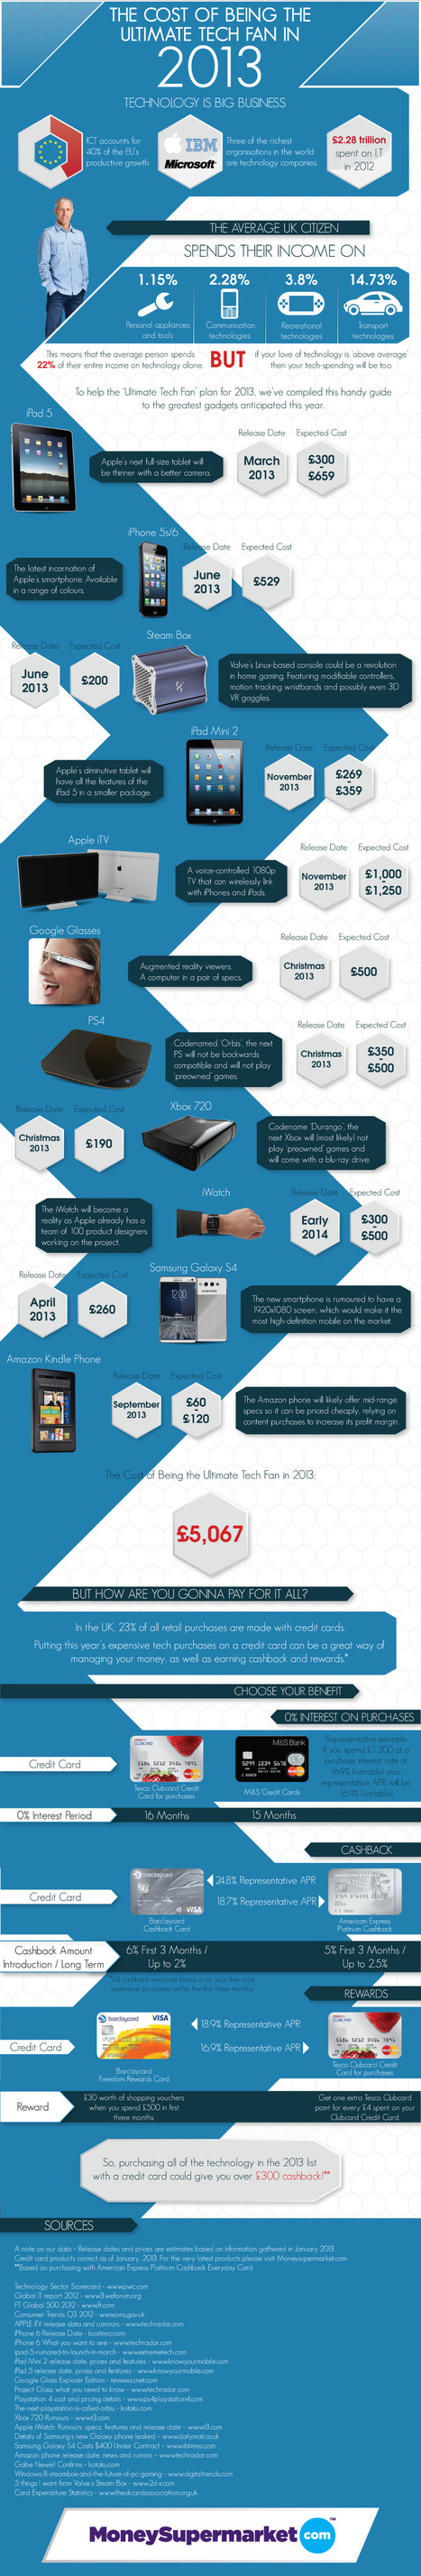 The Cost of Being the Ultimate Tech Fan in 2013 [Infographic] | Amazing Infographs | Scoop.it